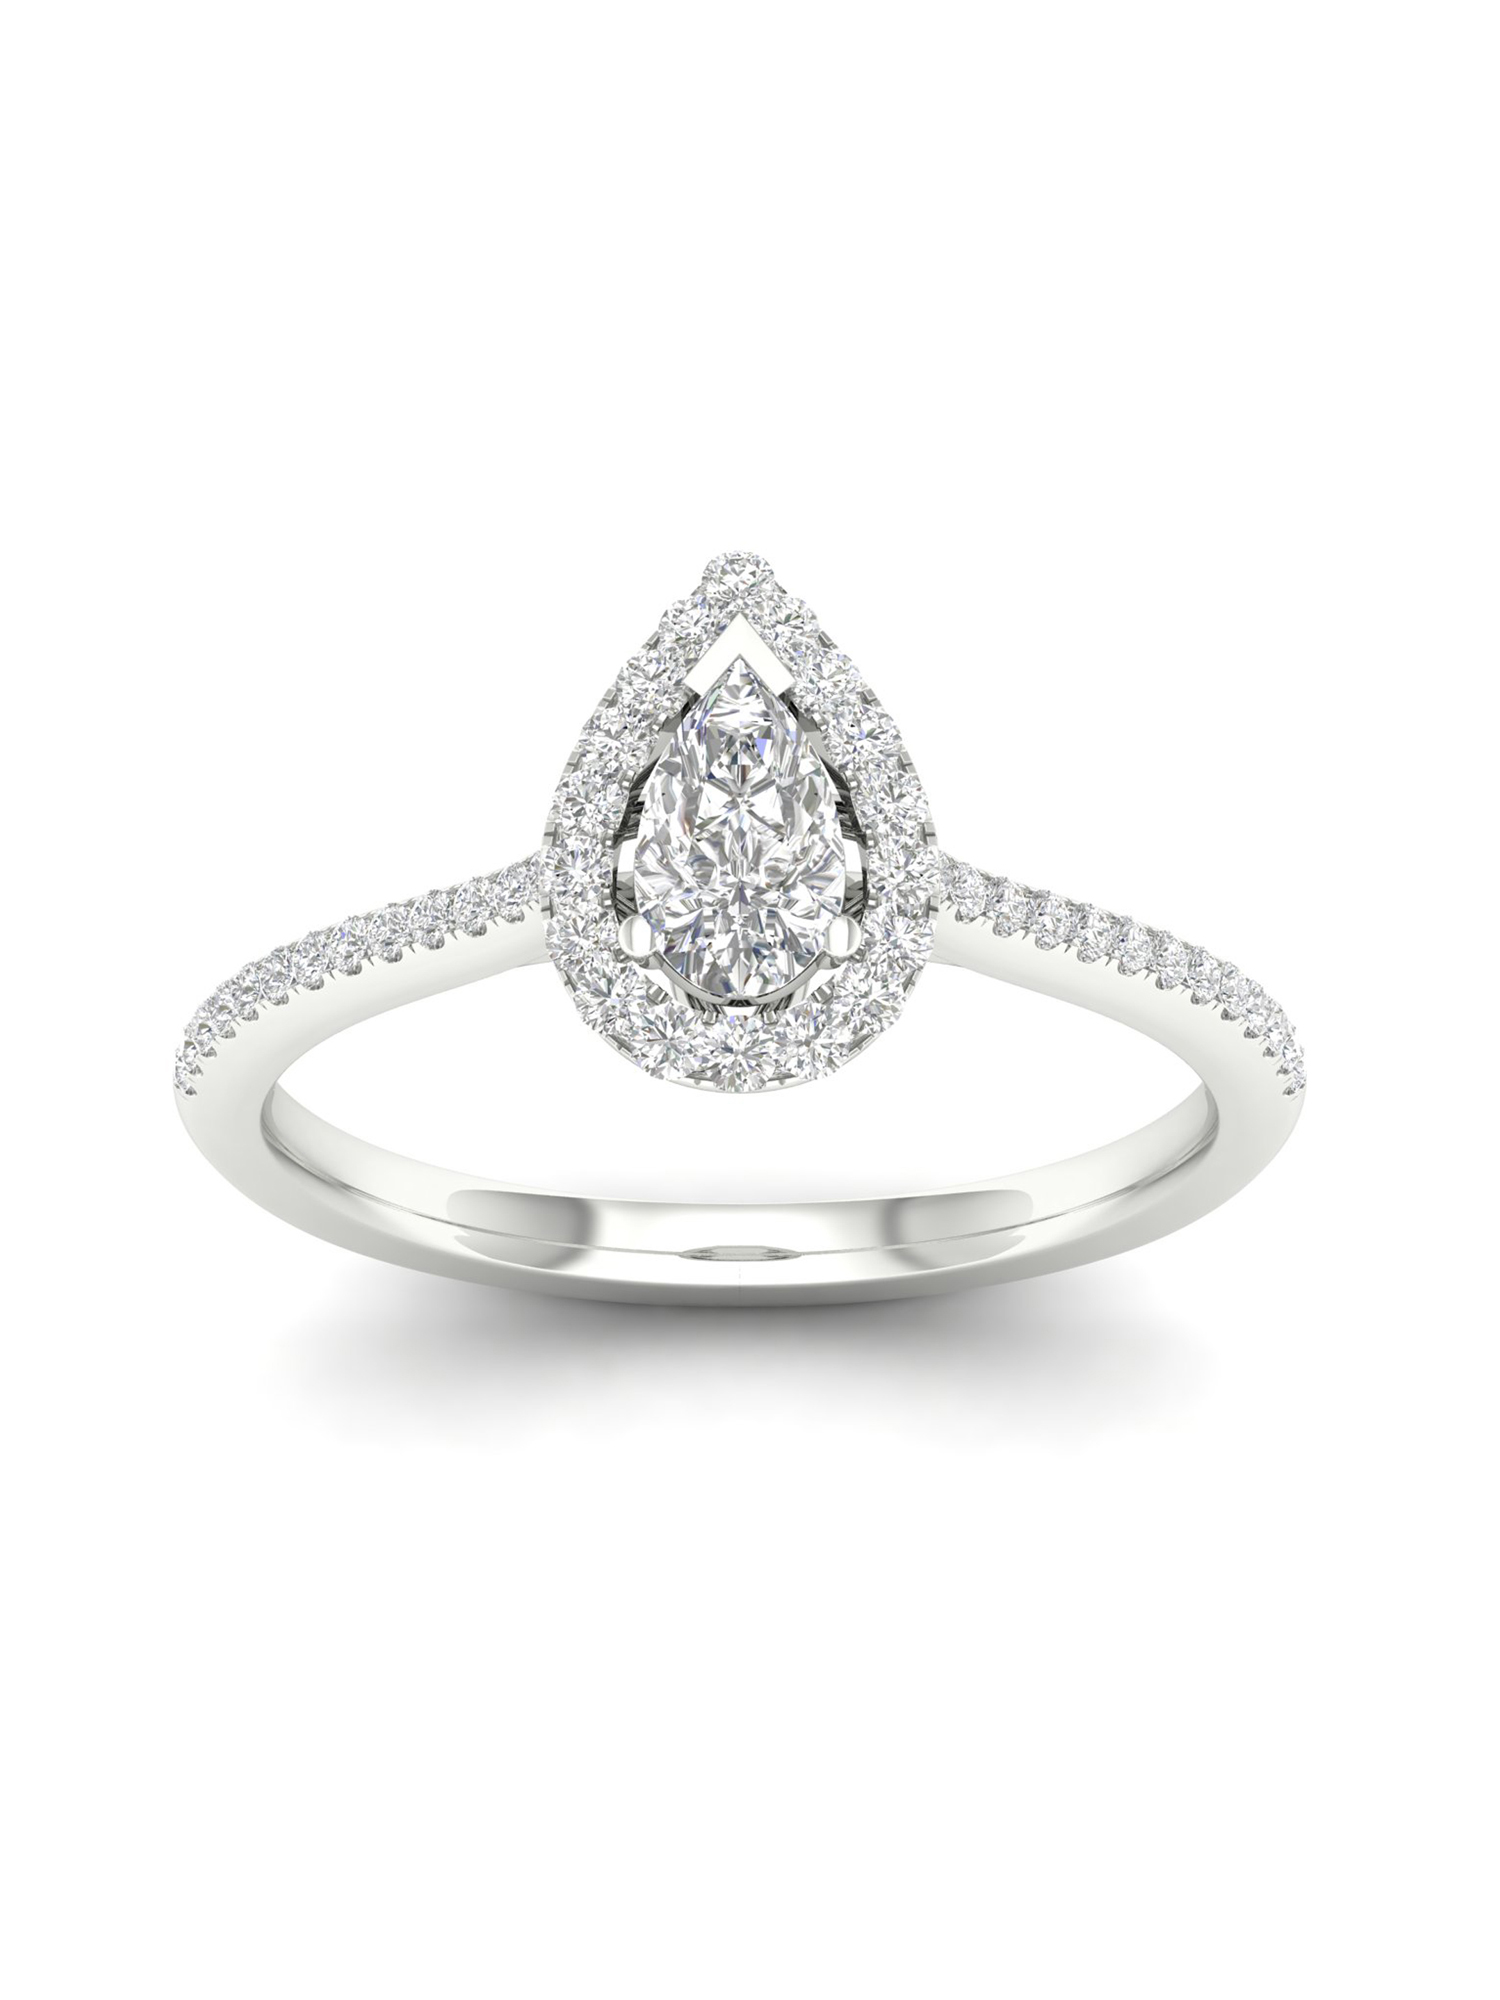 Imperial 1 3Ct TDW Pear Diamond 10k White Gold Halo Ring (I-J, I2) by Imperial Jewels